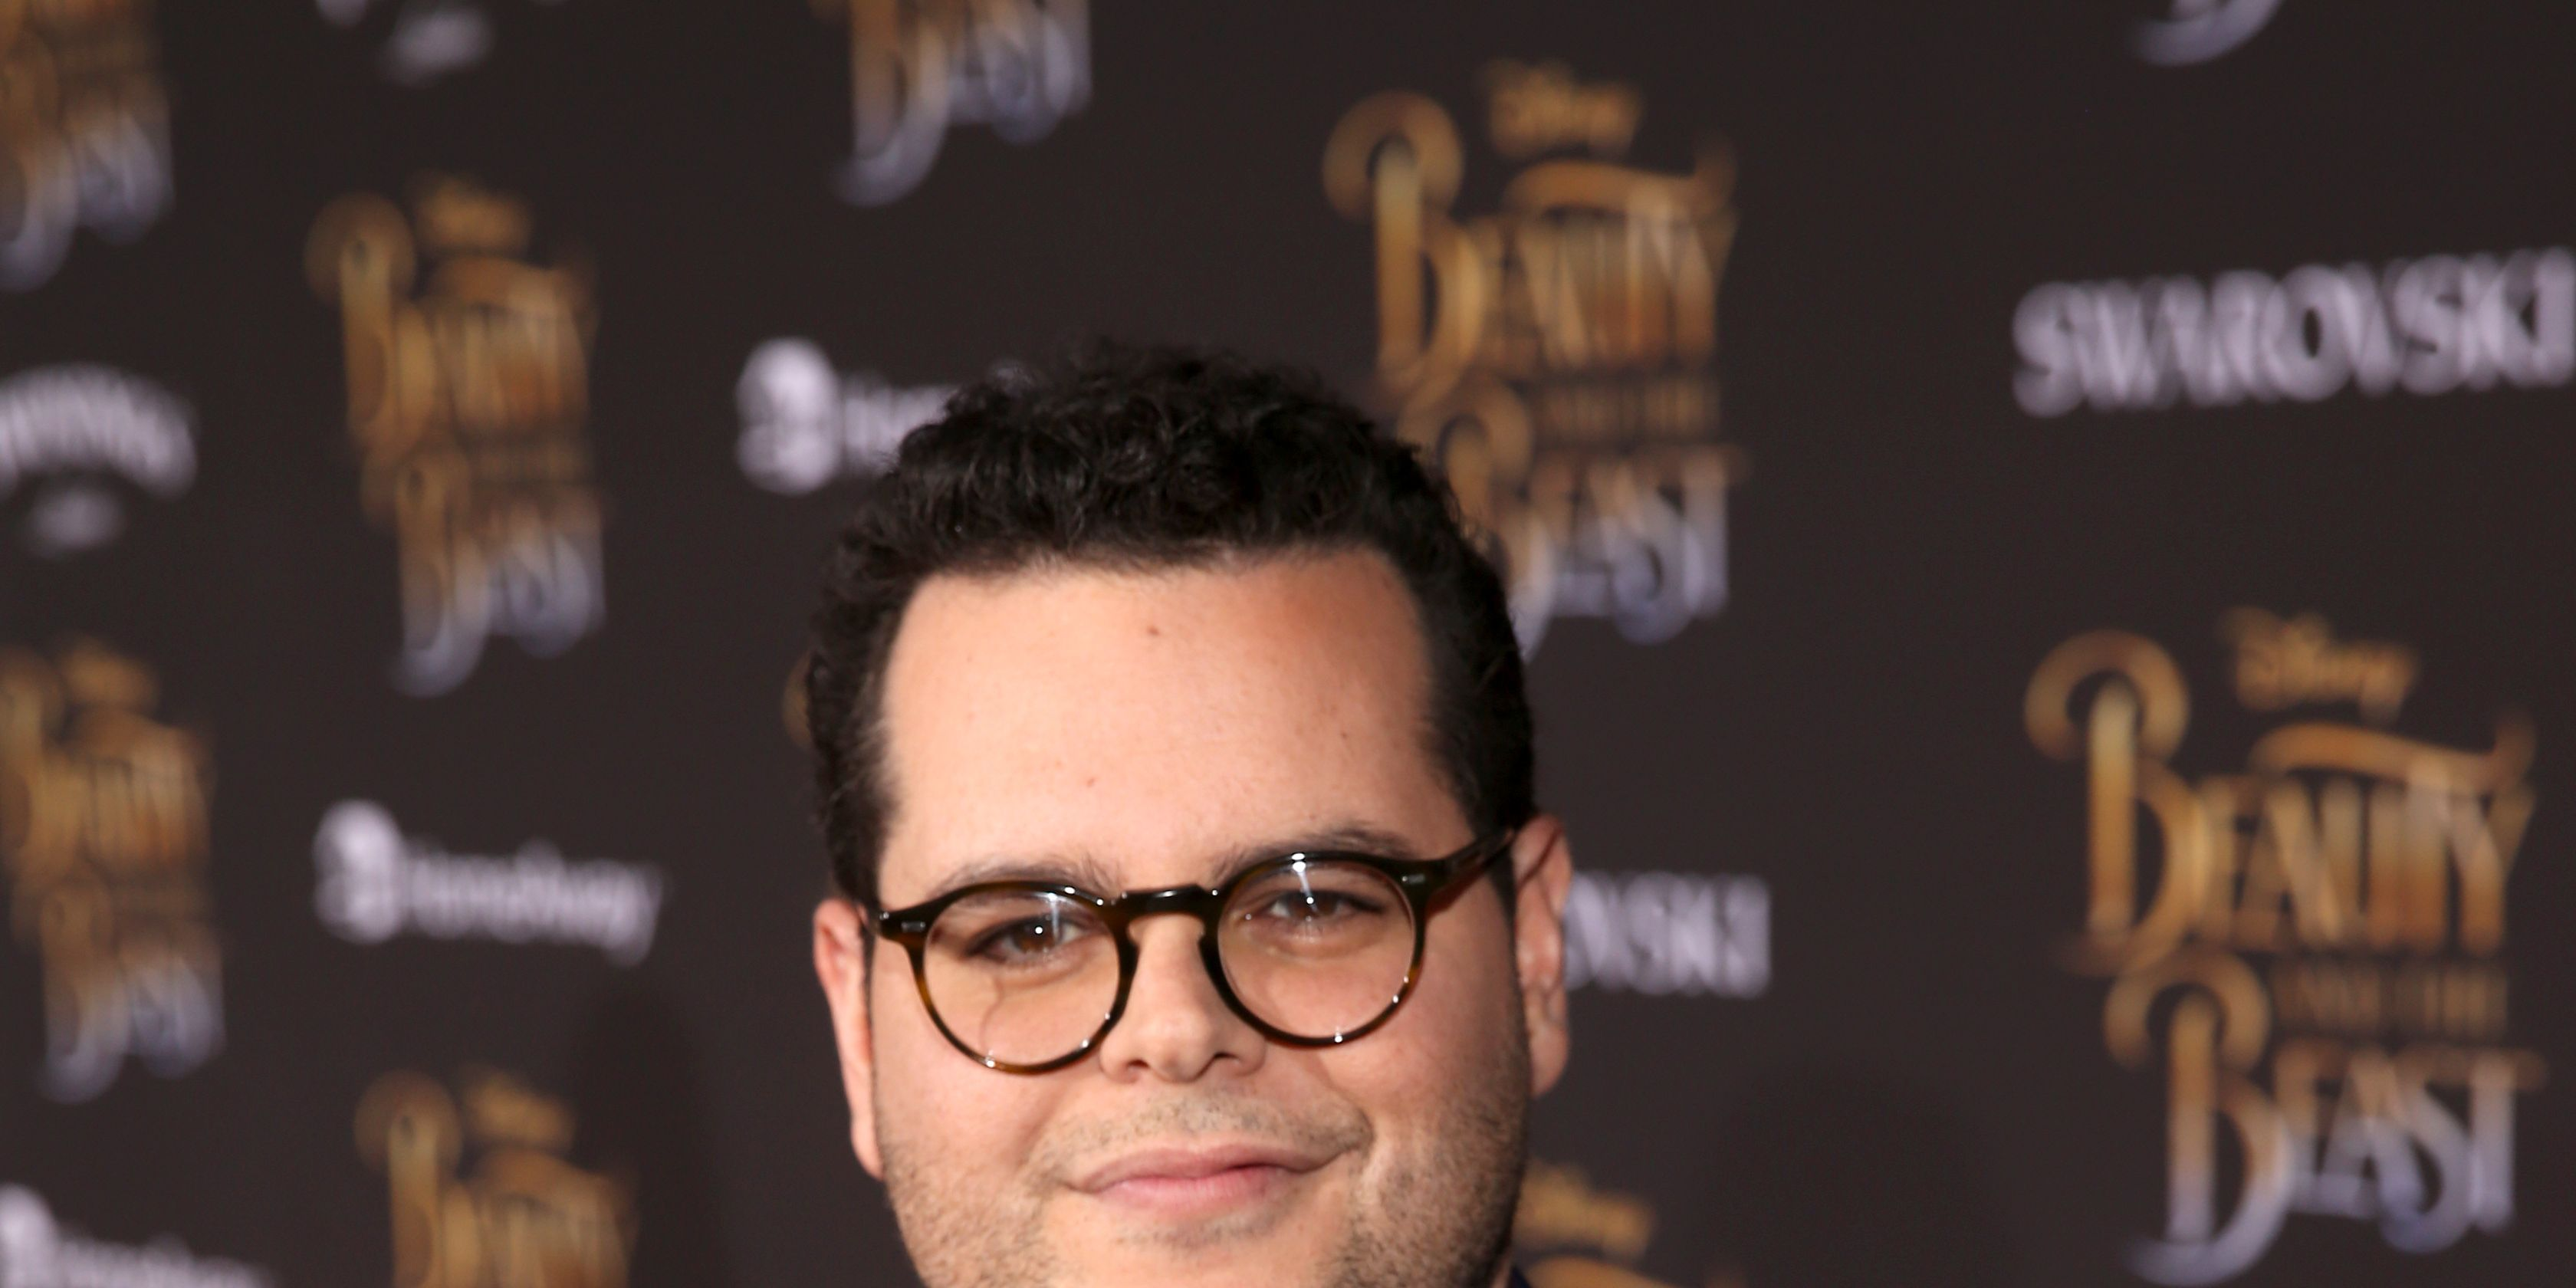 Josh Gad arrives for the world premiere of Disney's live-action 'Beauty and the Beast'